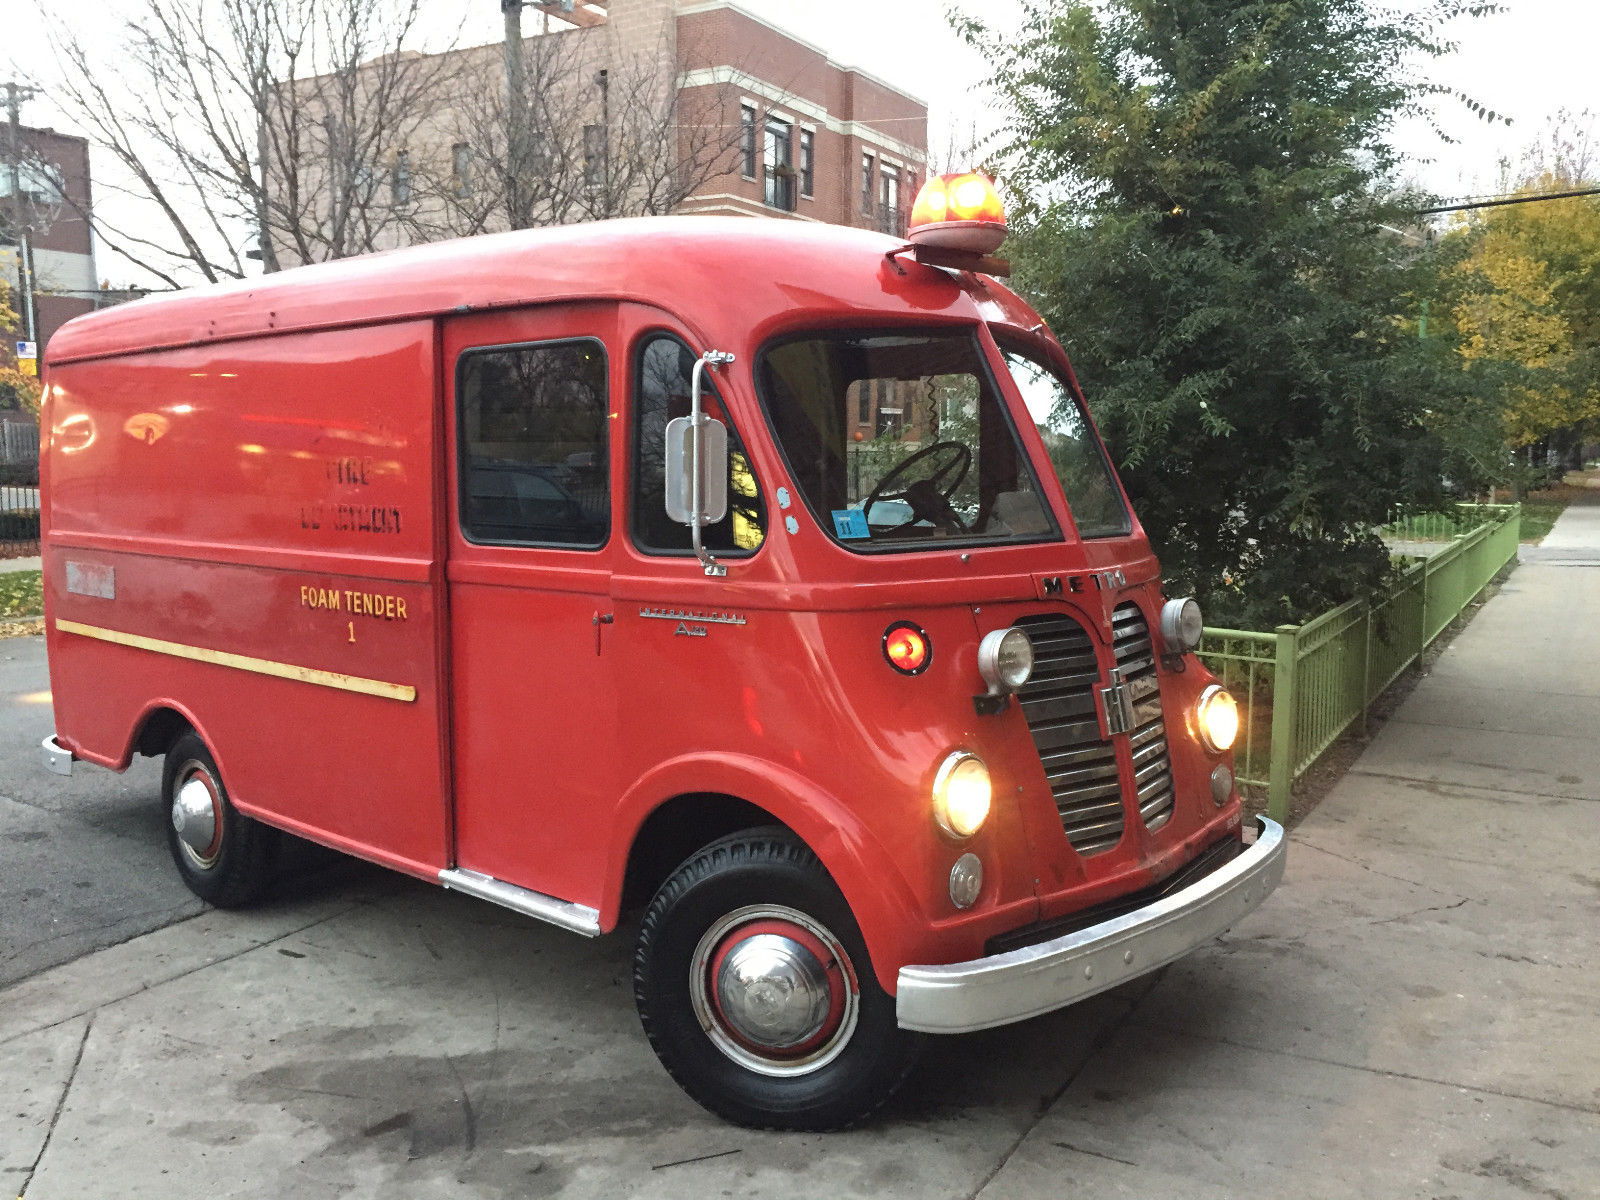 93ad525f49 1961 International Harvester Metro - A-120 Step Van - Fire Truck - Rare!